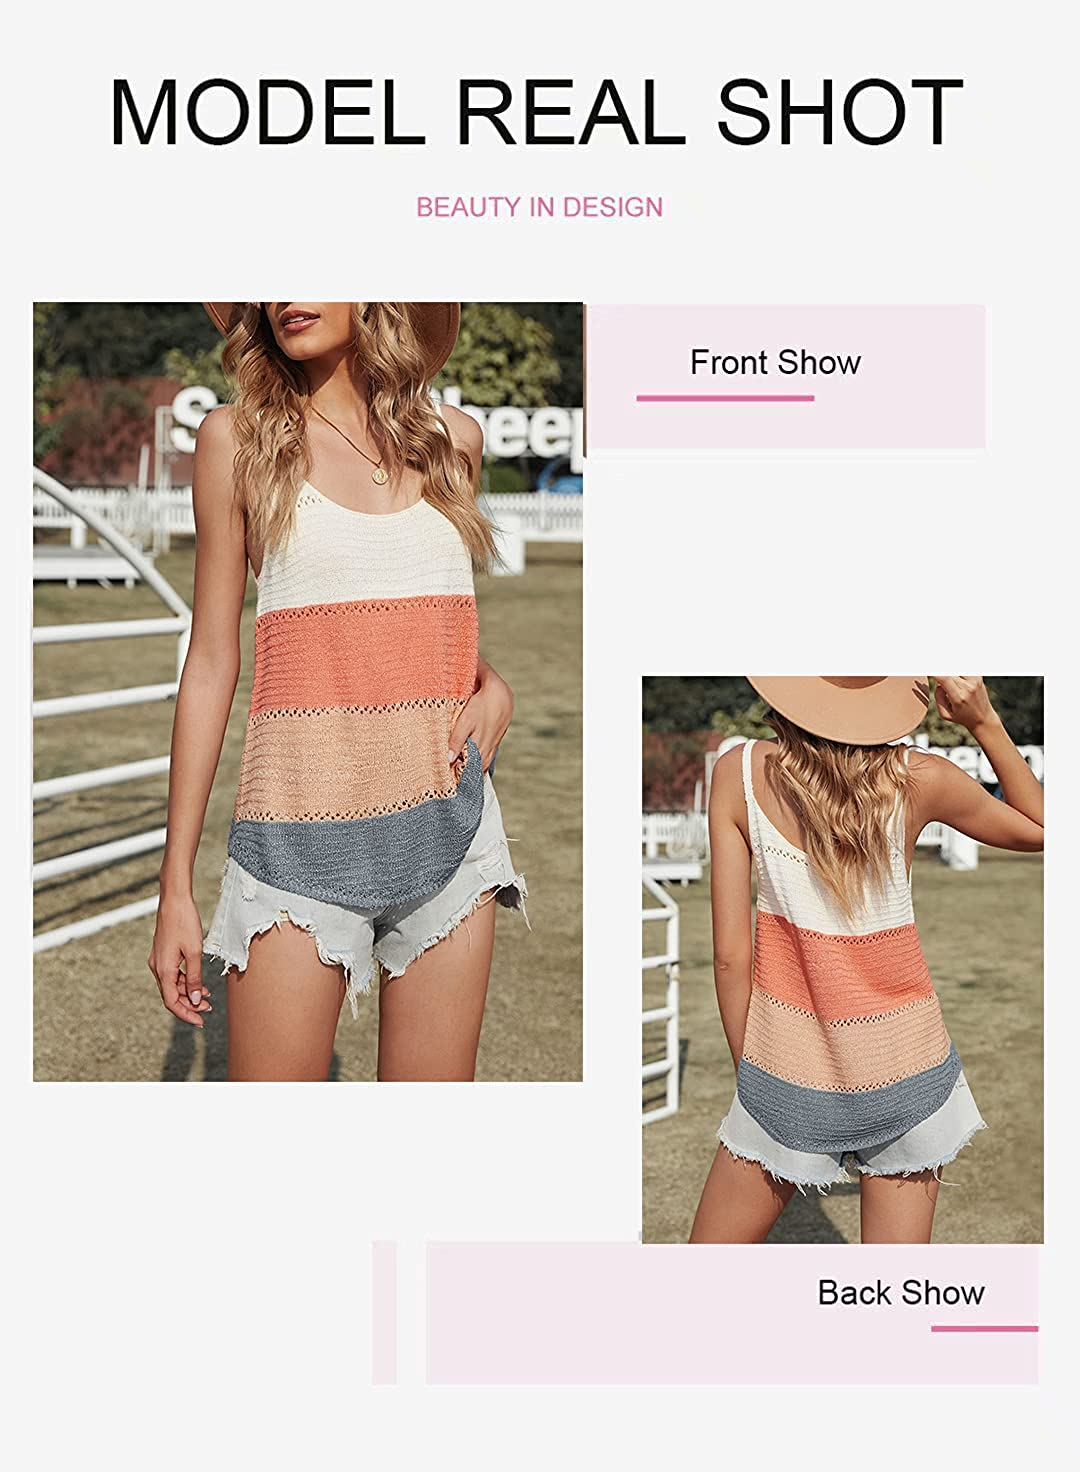 BLENCOT Women Knit Tank Tops Scoop Neck Basic Colorblock Casual Flowy Sleeveless Shirts Strappy Blouses Office S-2XL